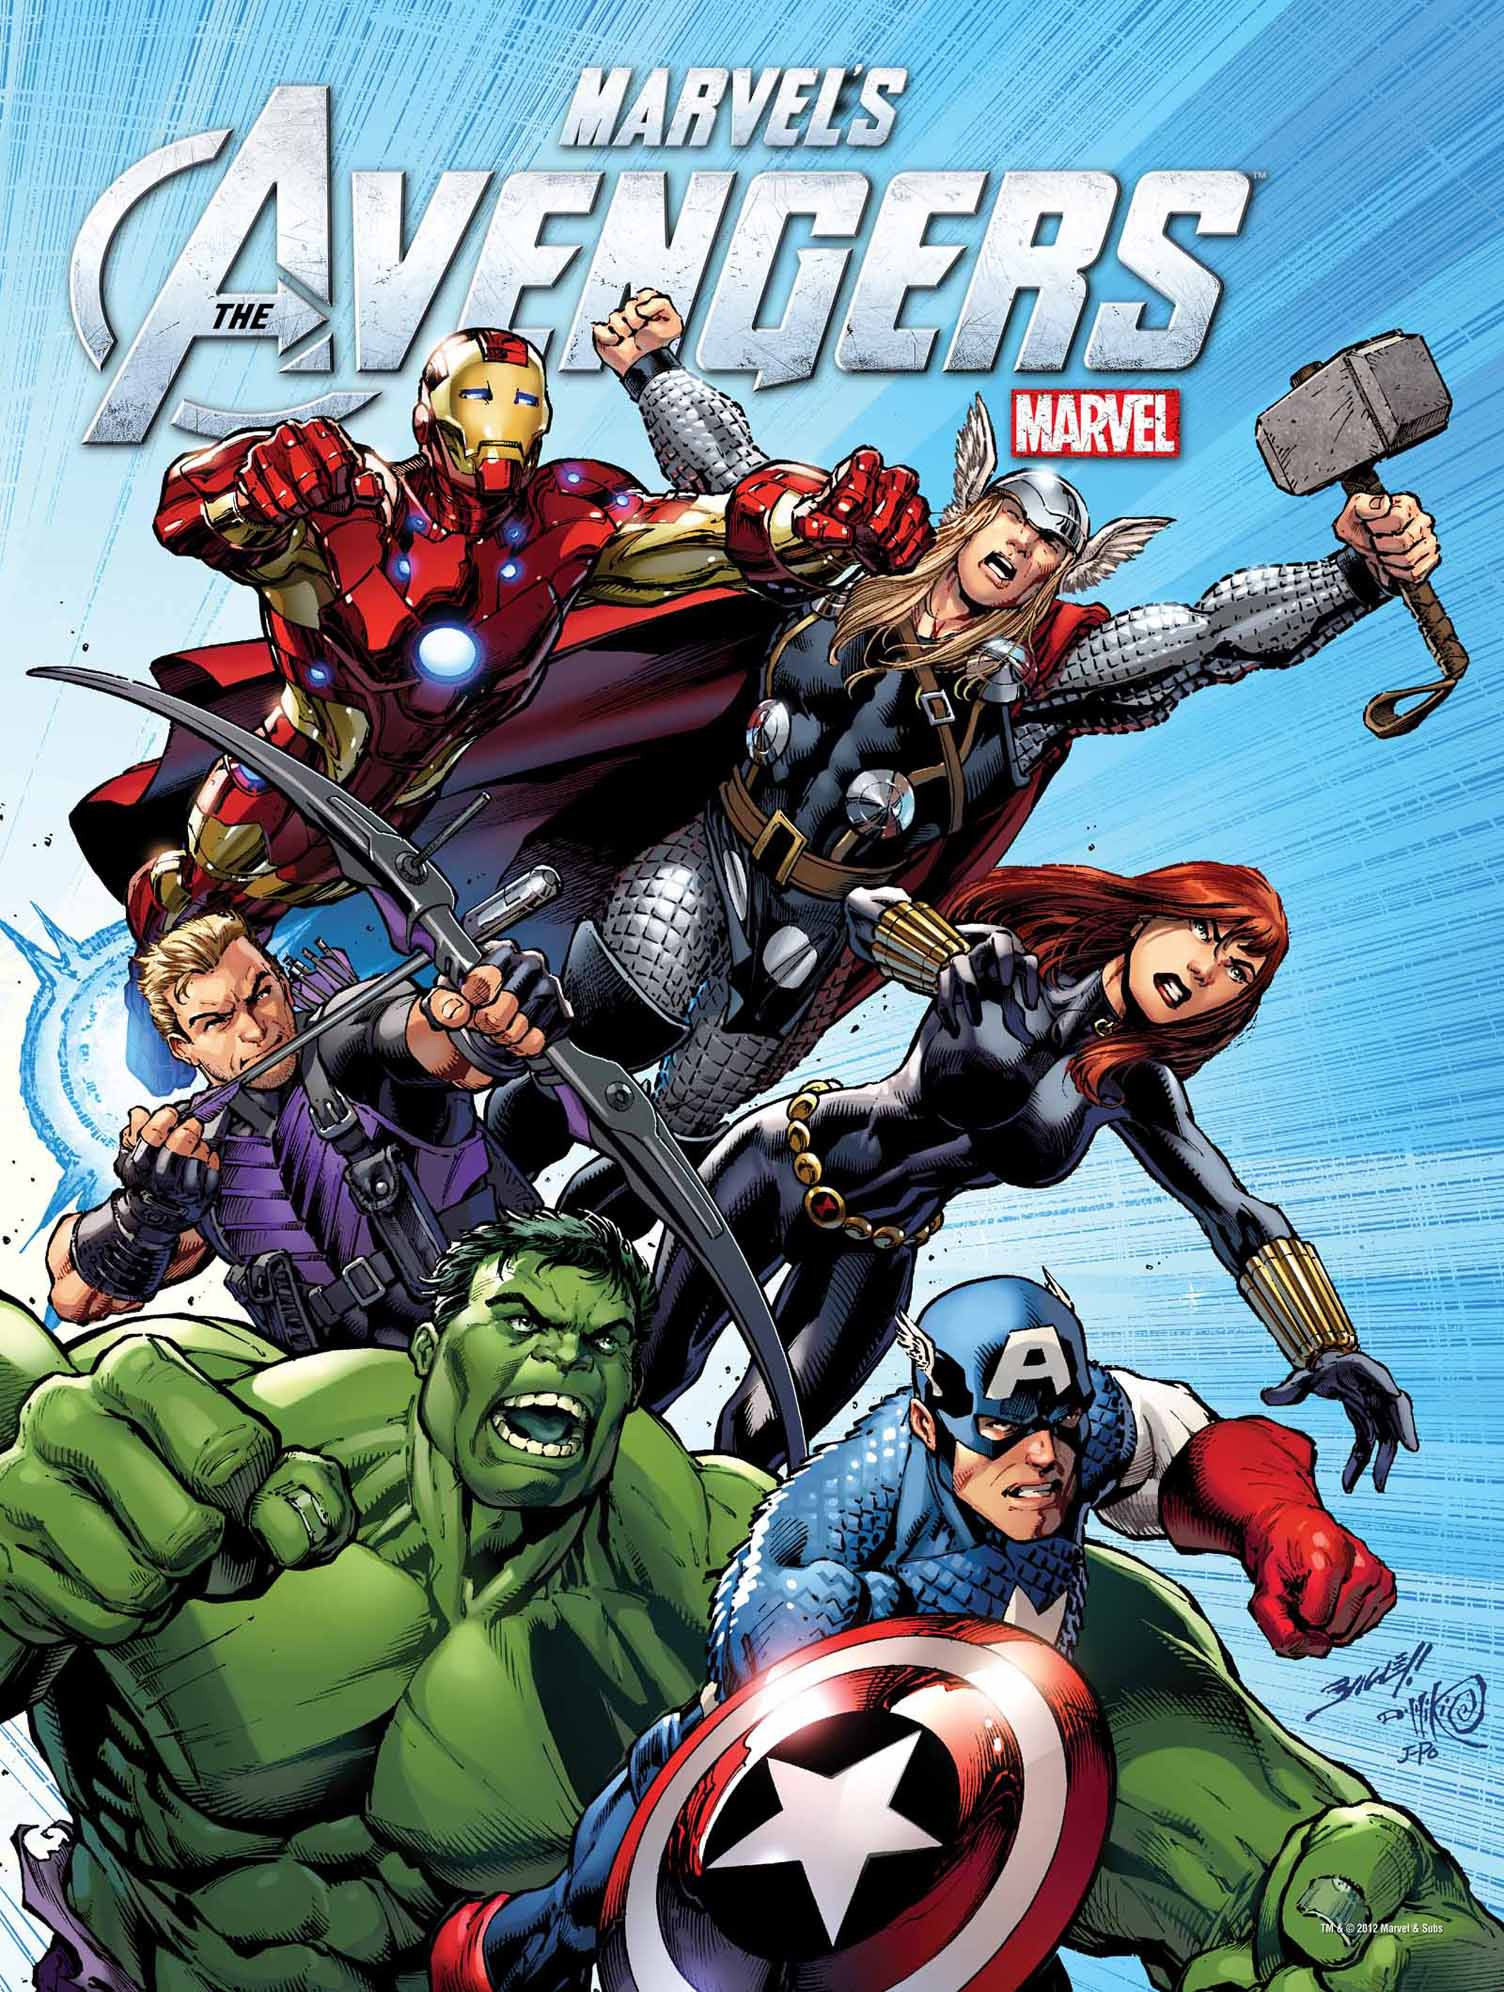 The Avengers: The Avengers DVD/Blu-ray Posters Revealed